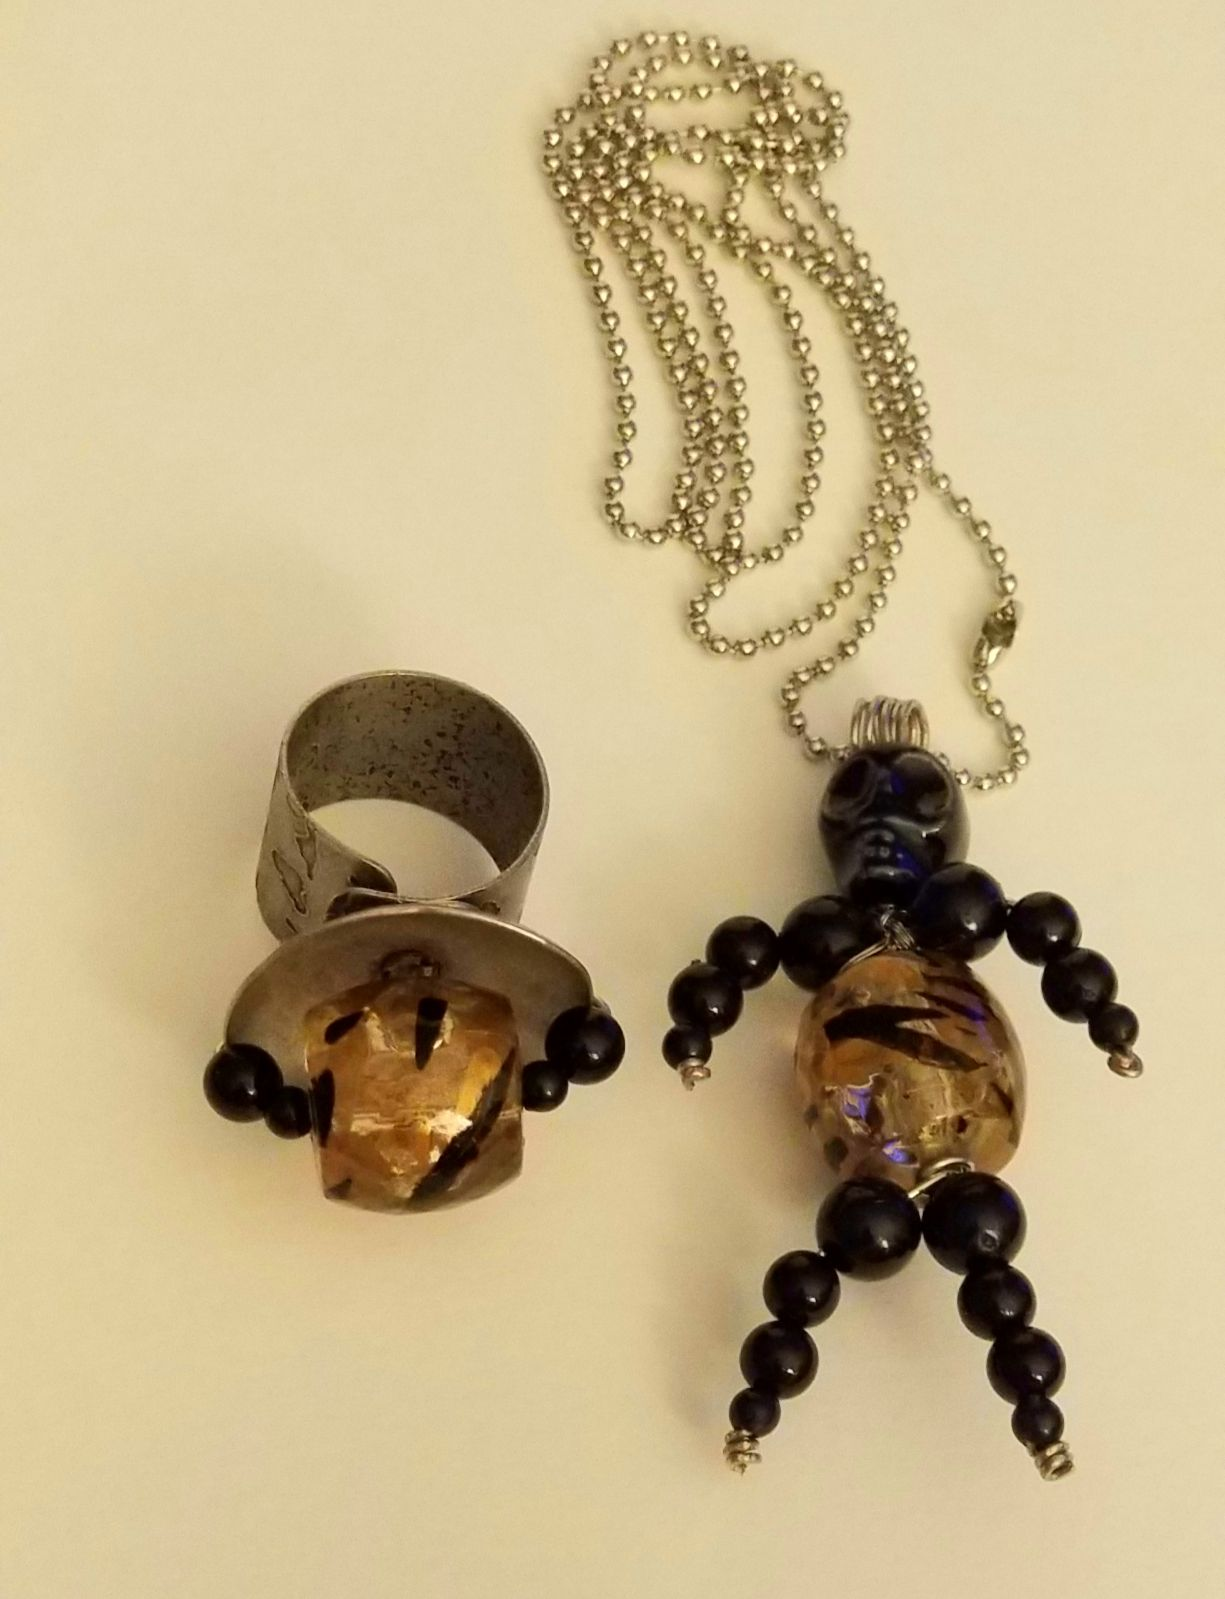 SKULL JEWELRY NECKLACE & ADJUSTABLE RING